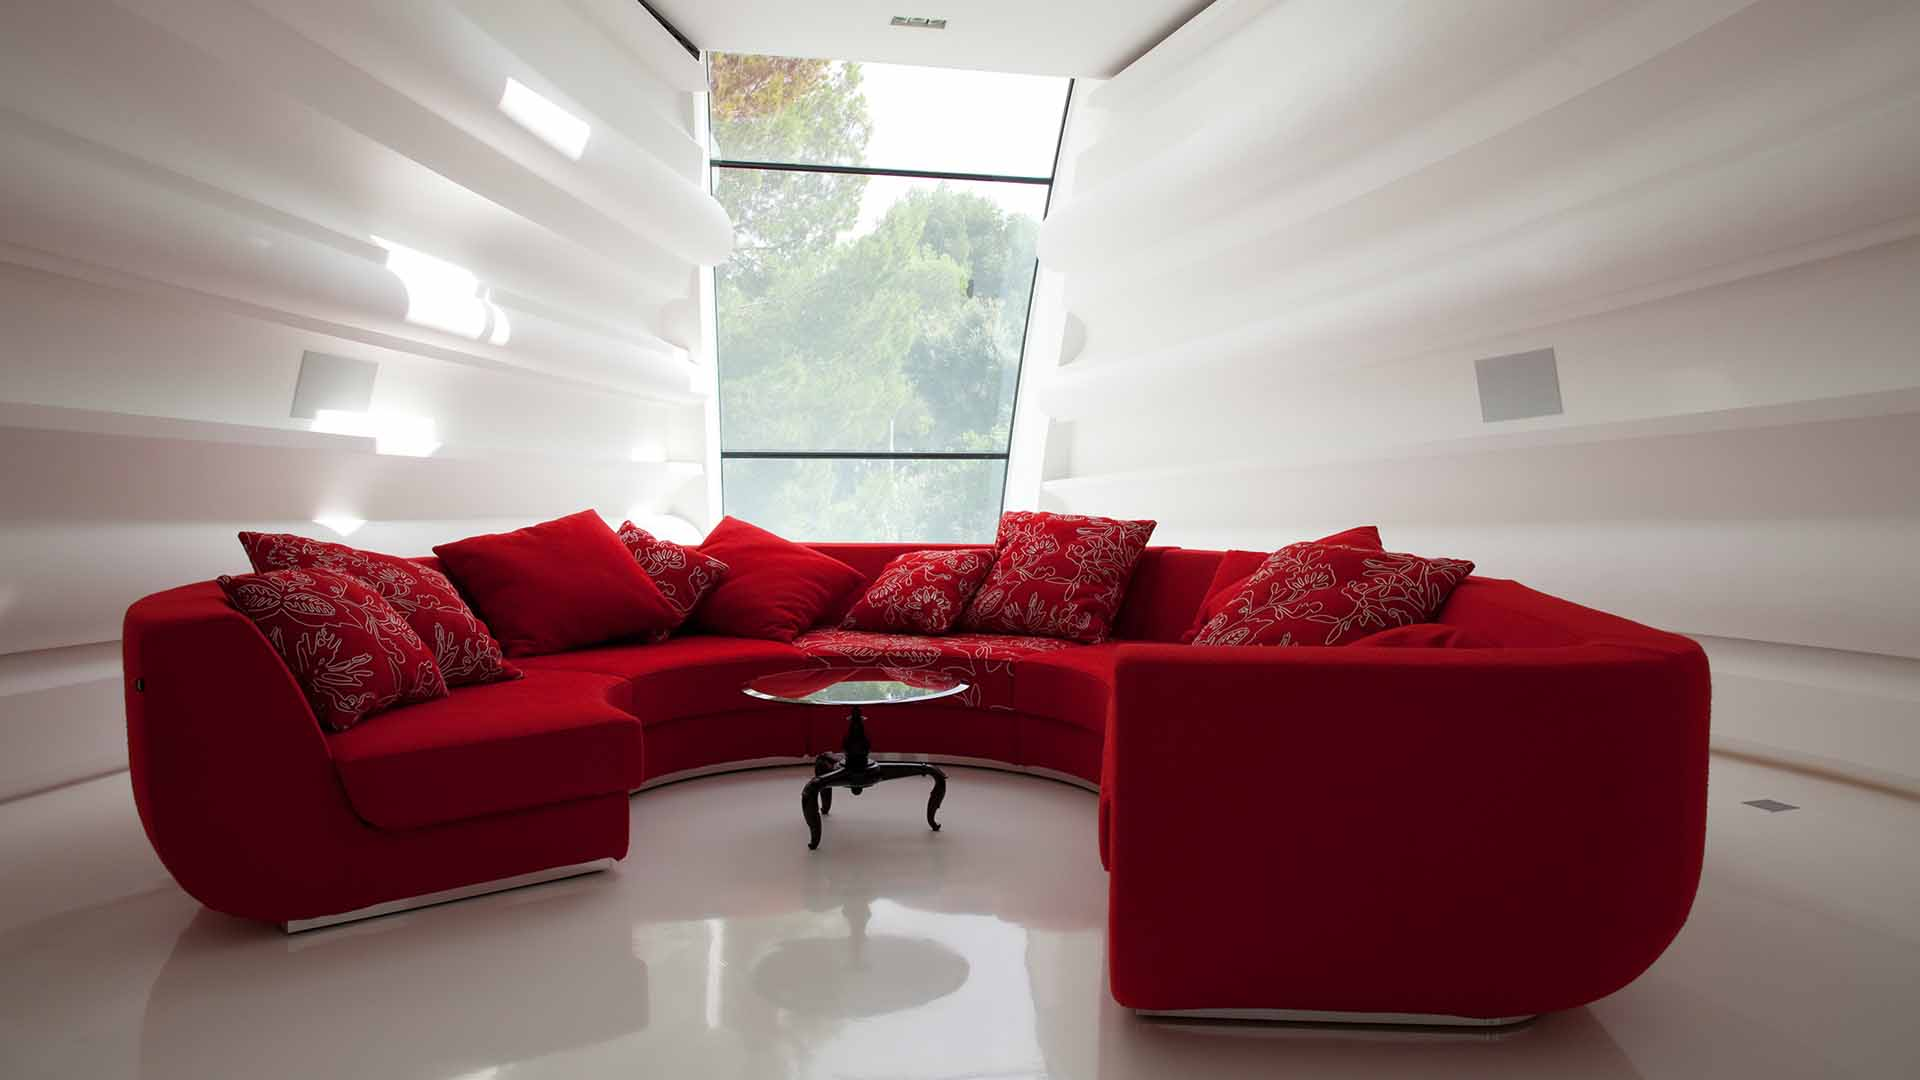 chair design wallpaper terry cloth cover basic styles of interior designing part 2 my decorative